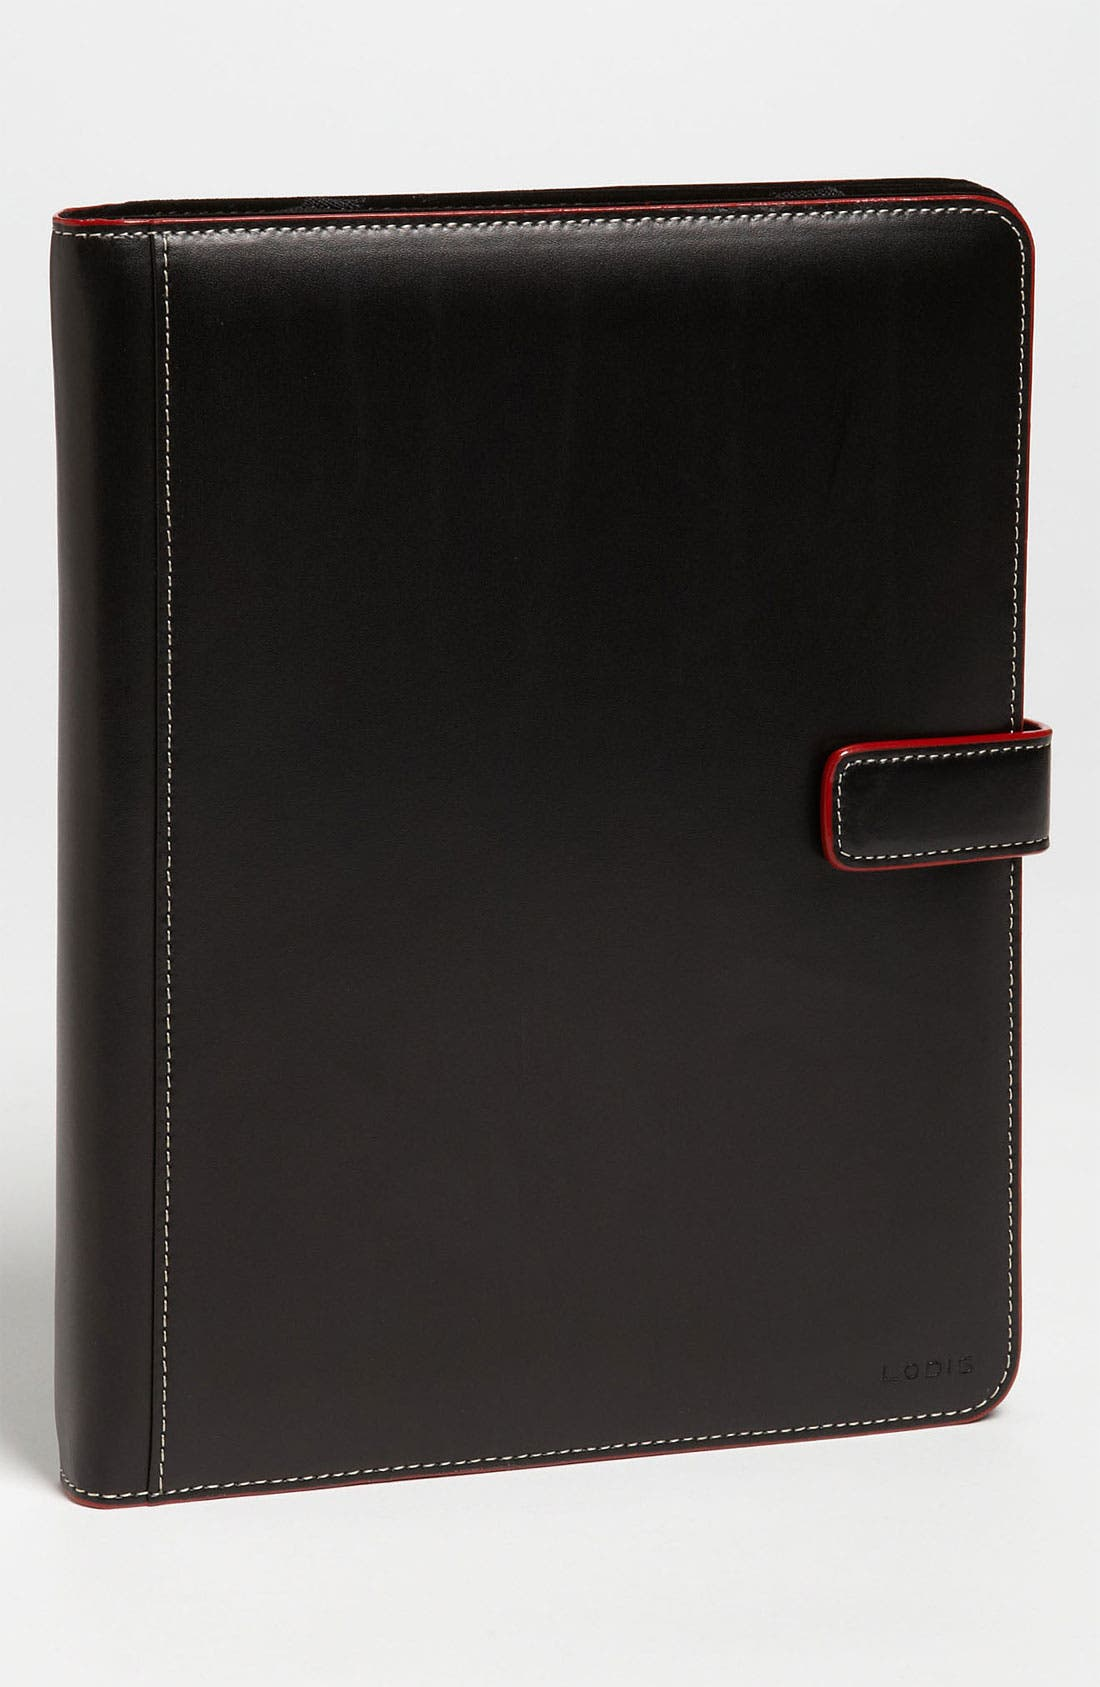 LODIS LOS ANGELES Lodis 'Sylvie Swivel' iPad Case, Main, color, 001